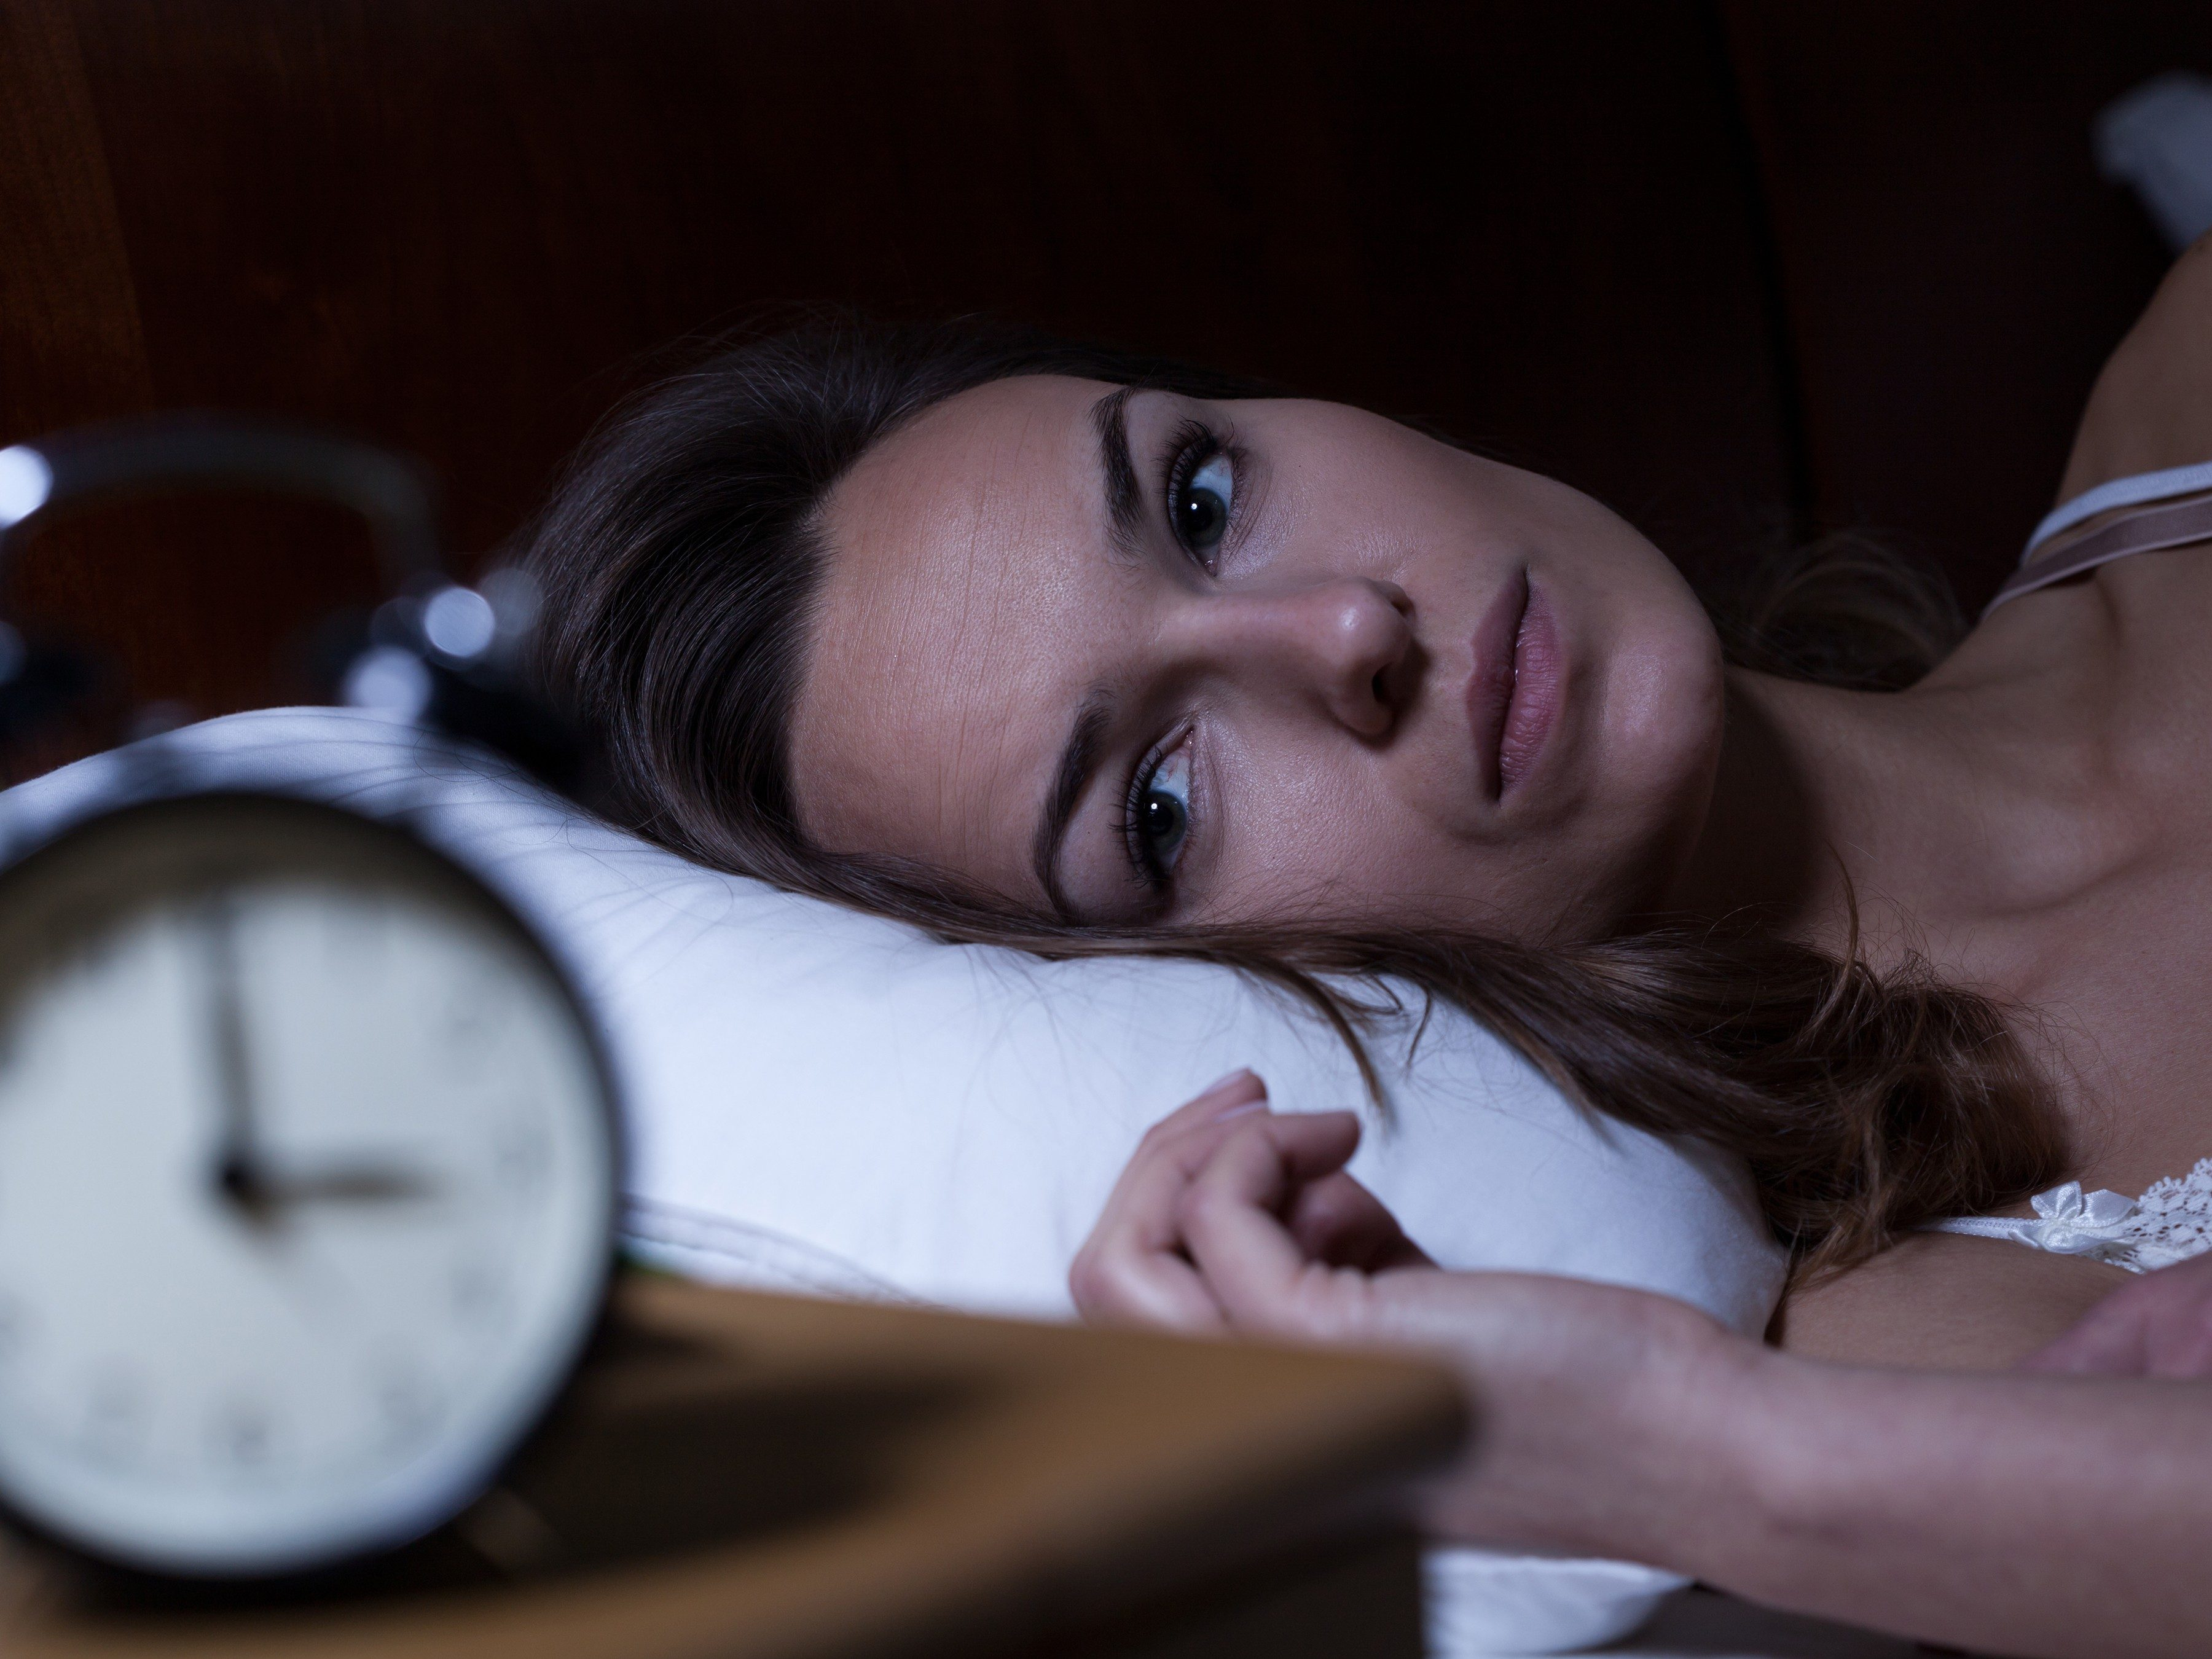 1. Maintain a healthy weight to prevent insomnia